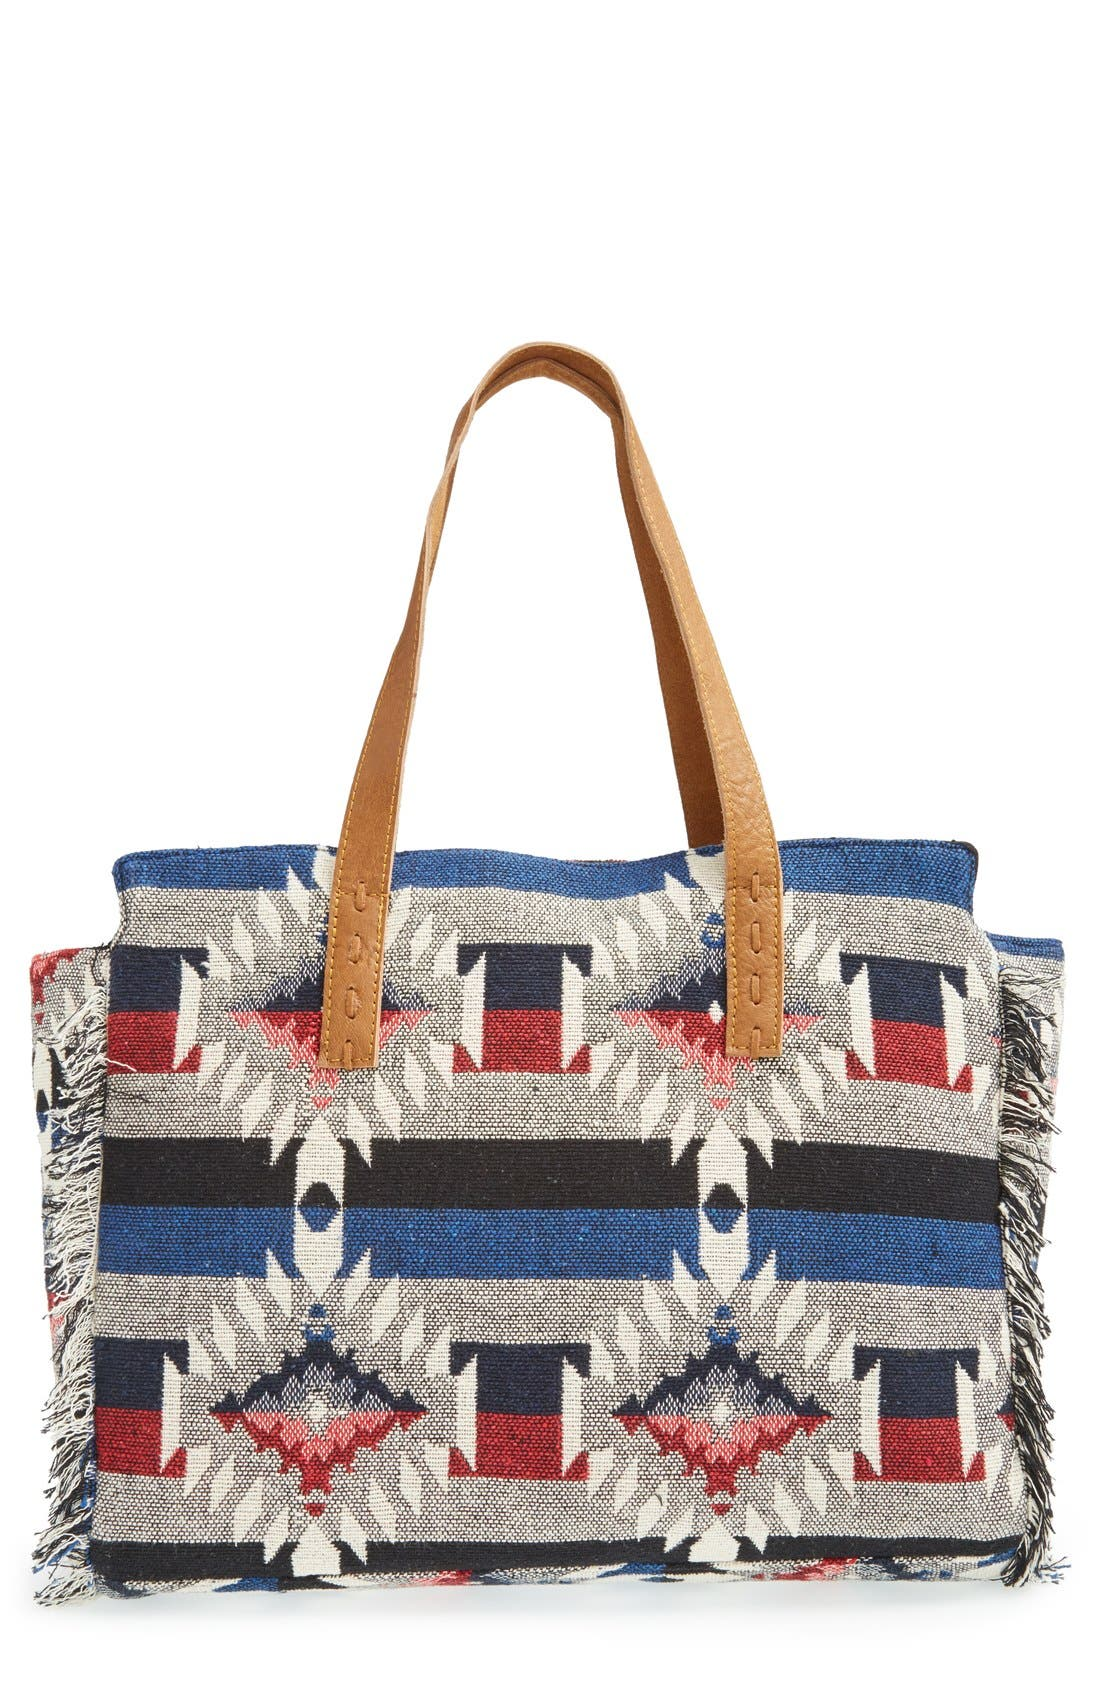 Alternate Image 1 Selected - Sole Society Woven Geometric Tote